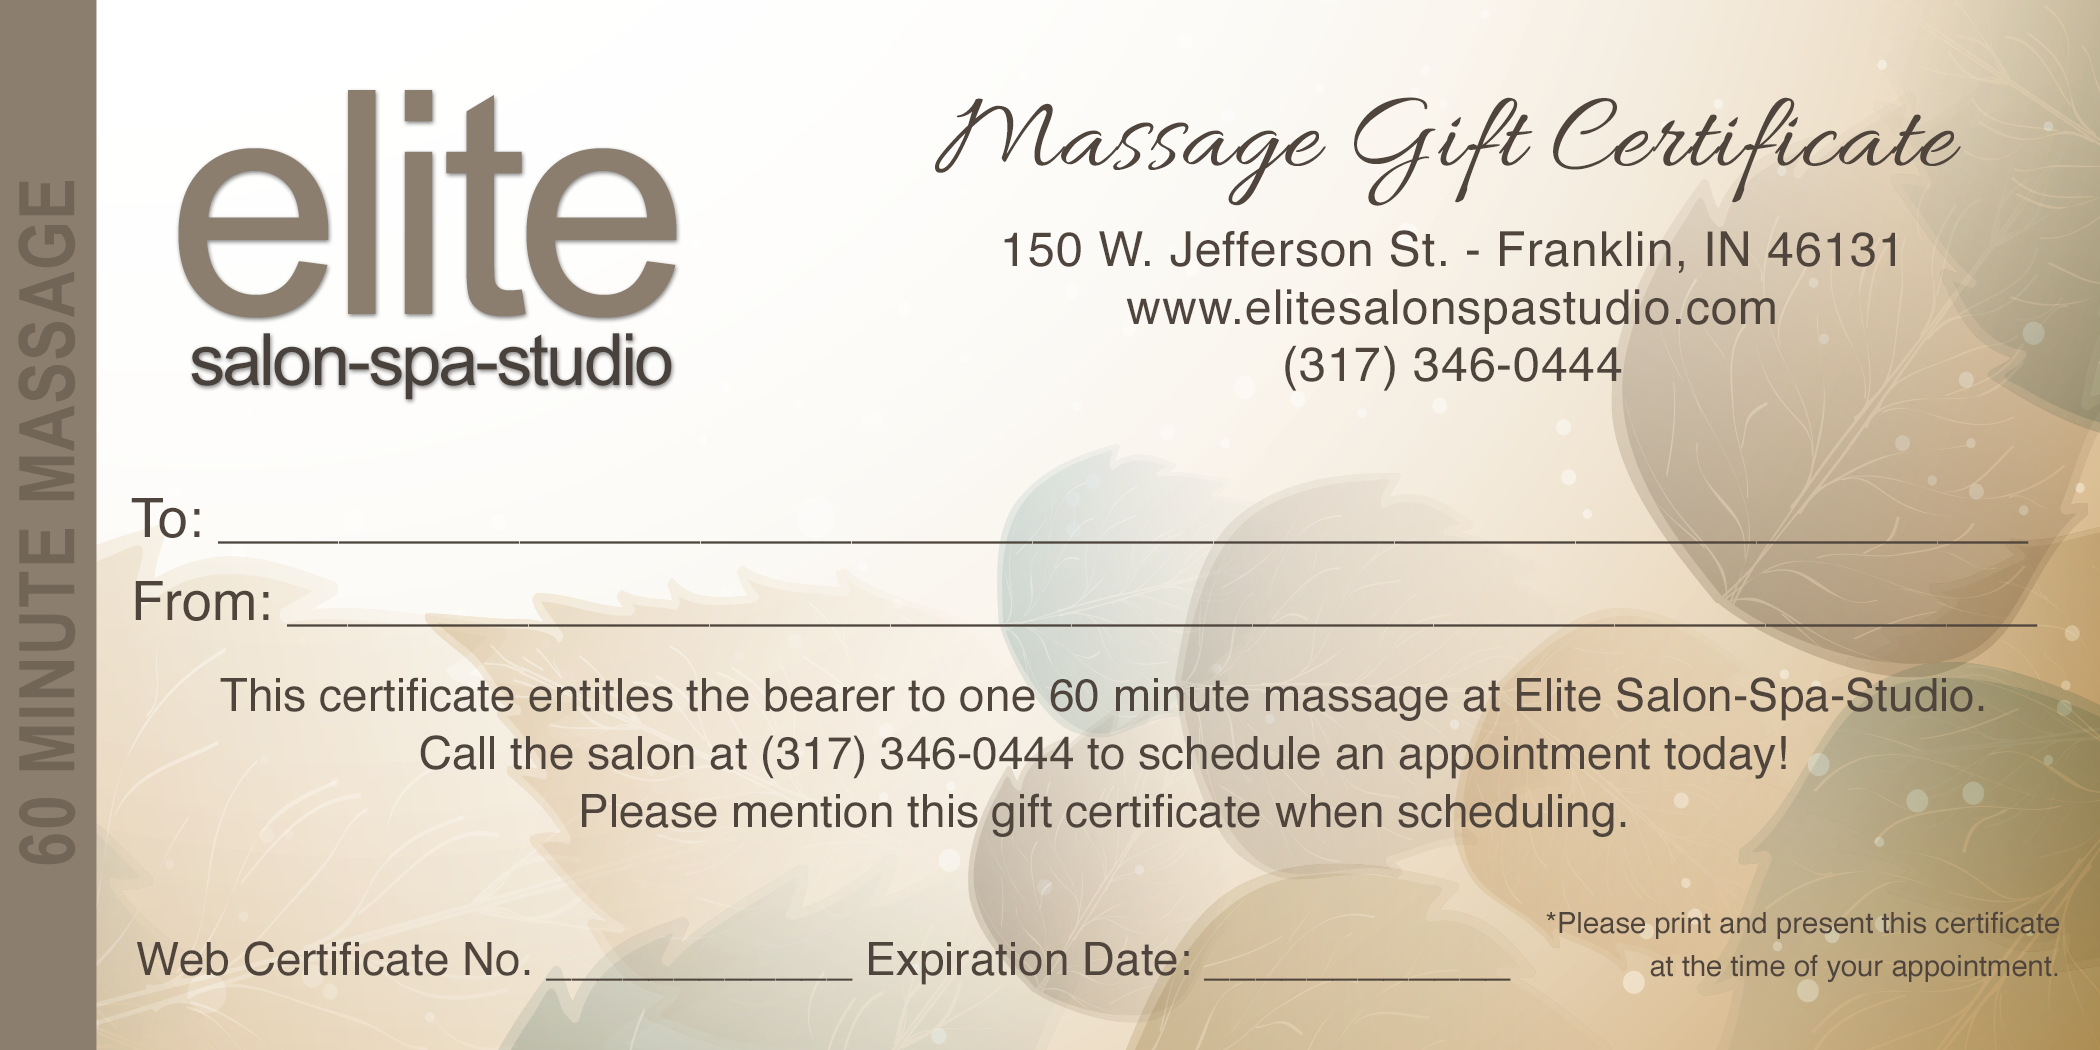 Massage gift certificate elite salon spa studio voucher image xflitez Images